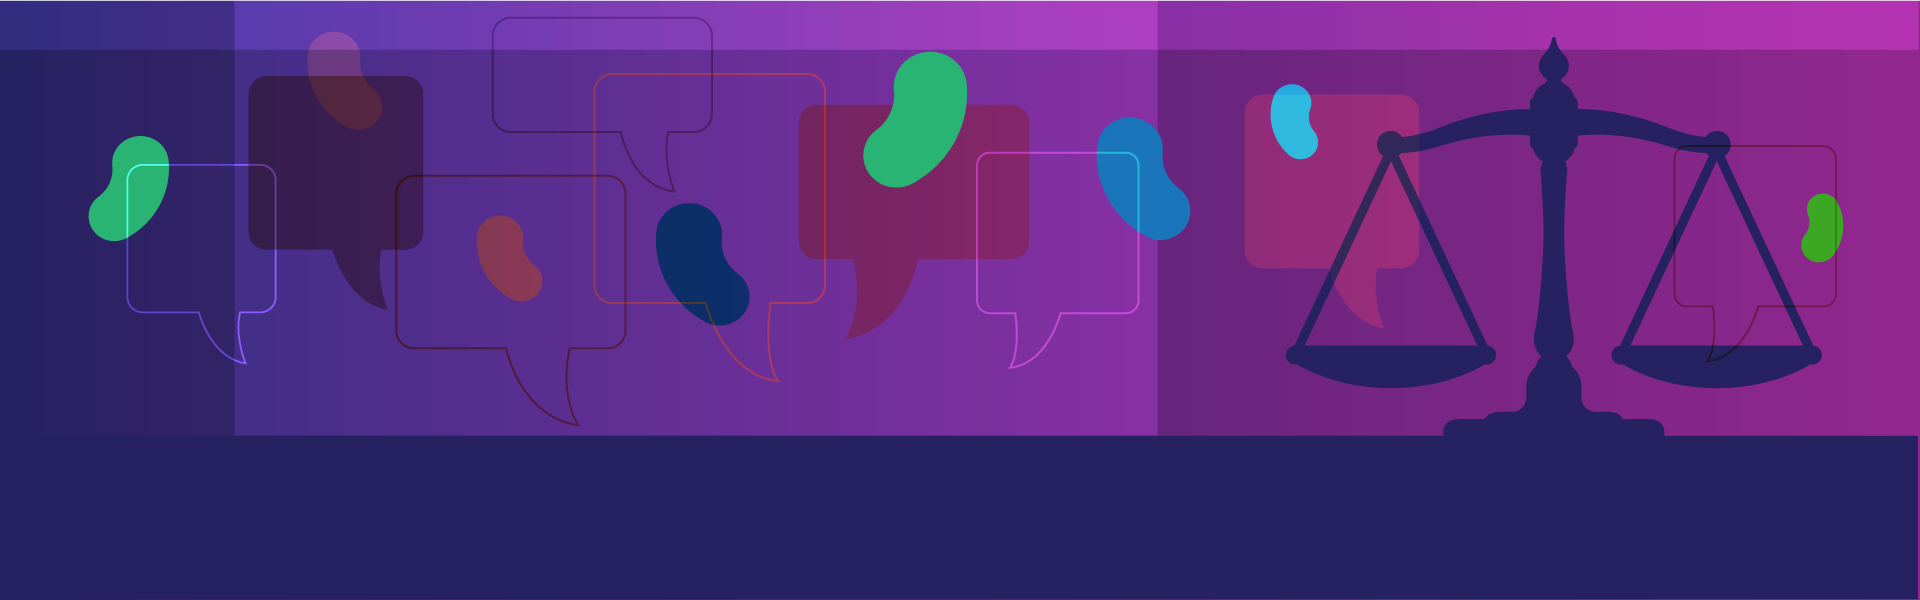 Dark purples and blues illustration of balanced scale with discussion bubbles and icons of kidneys